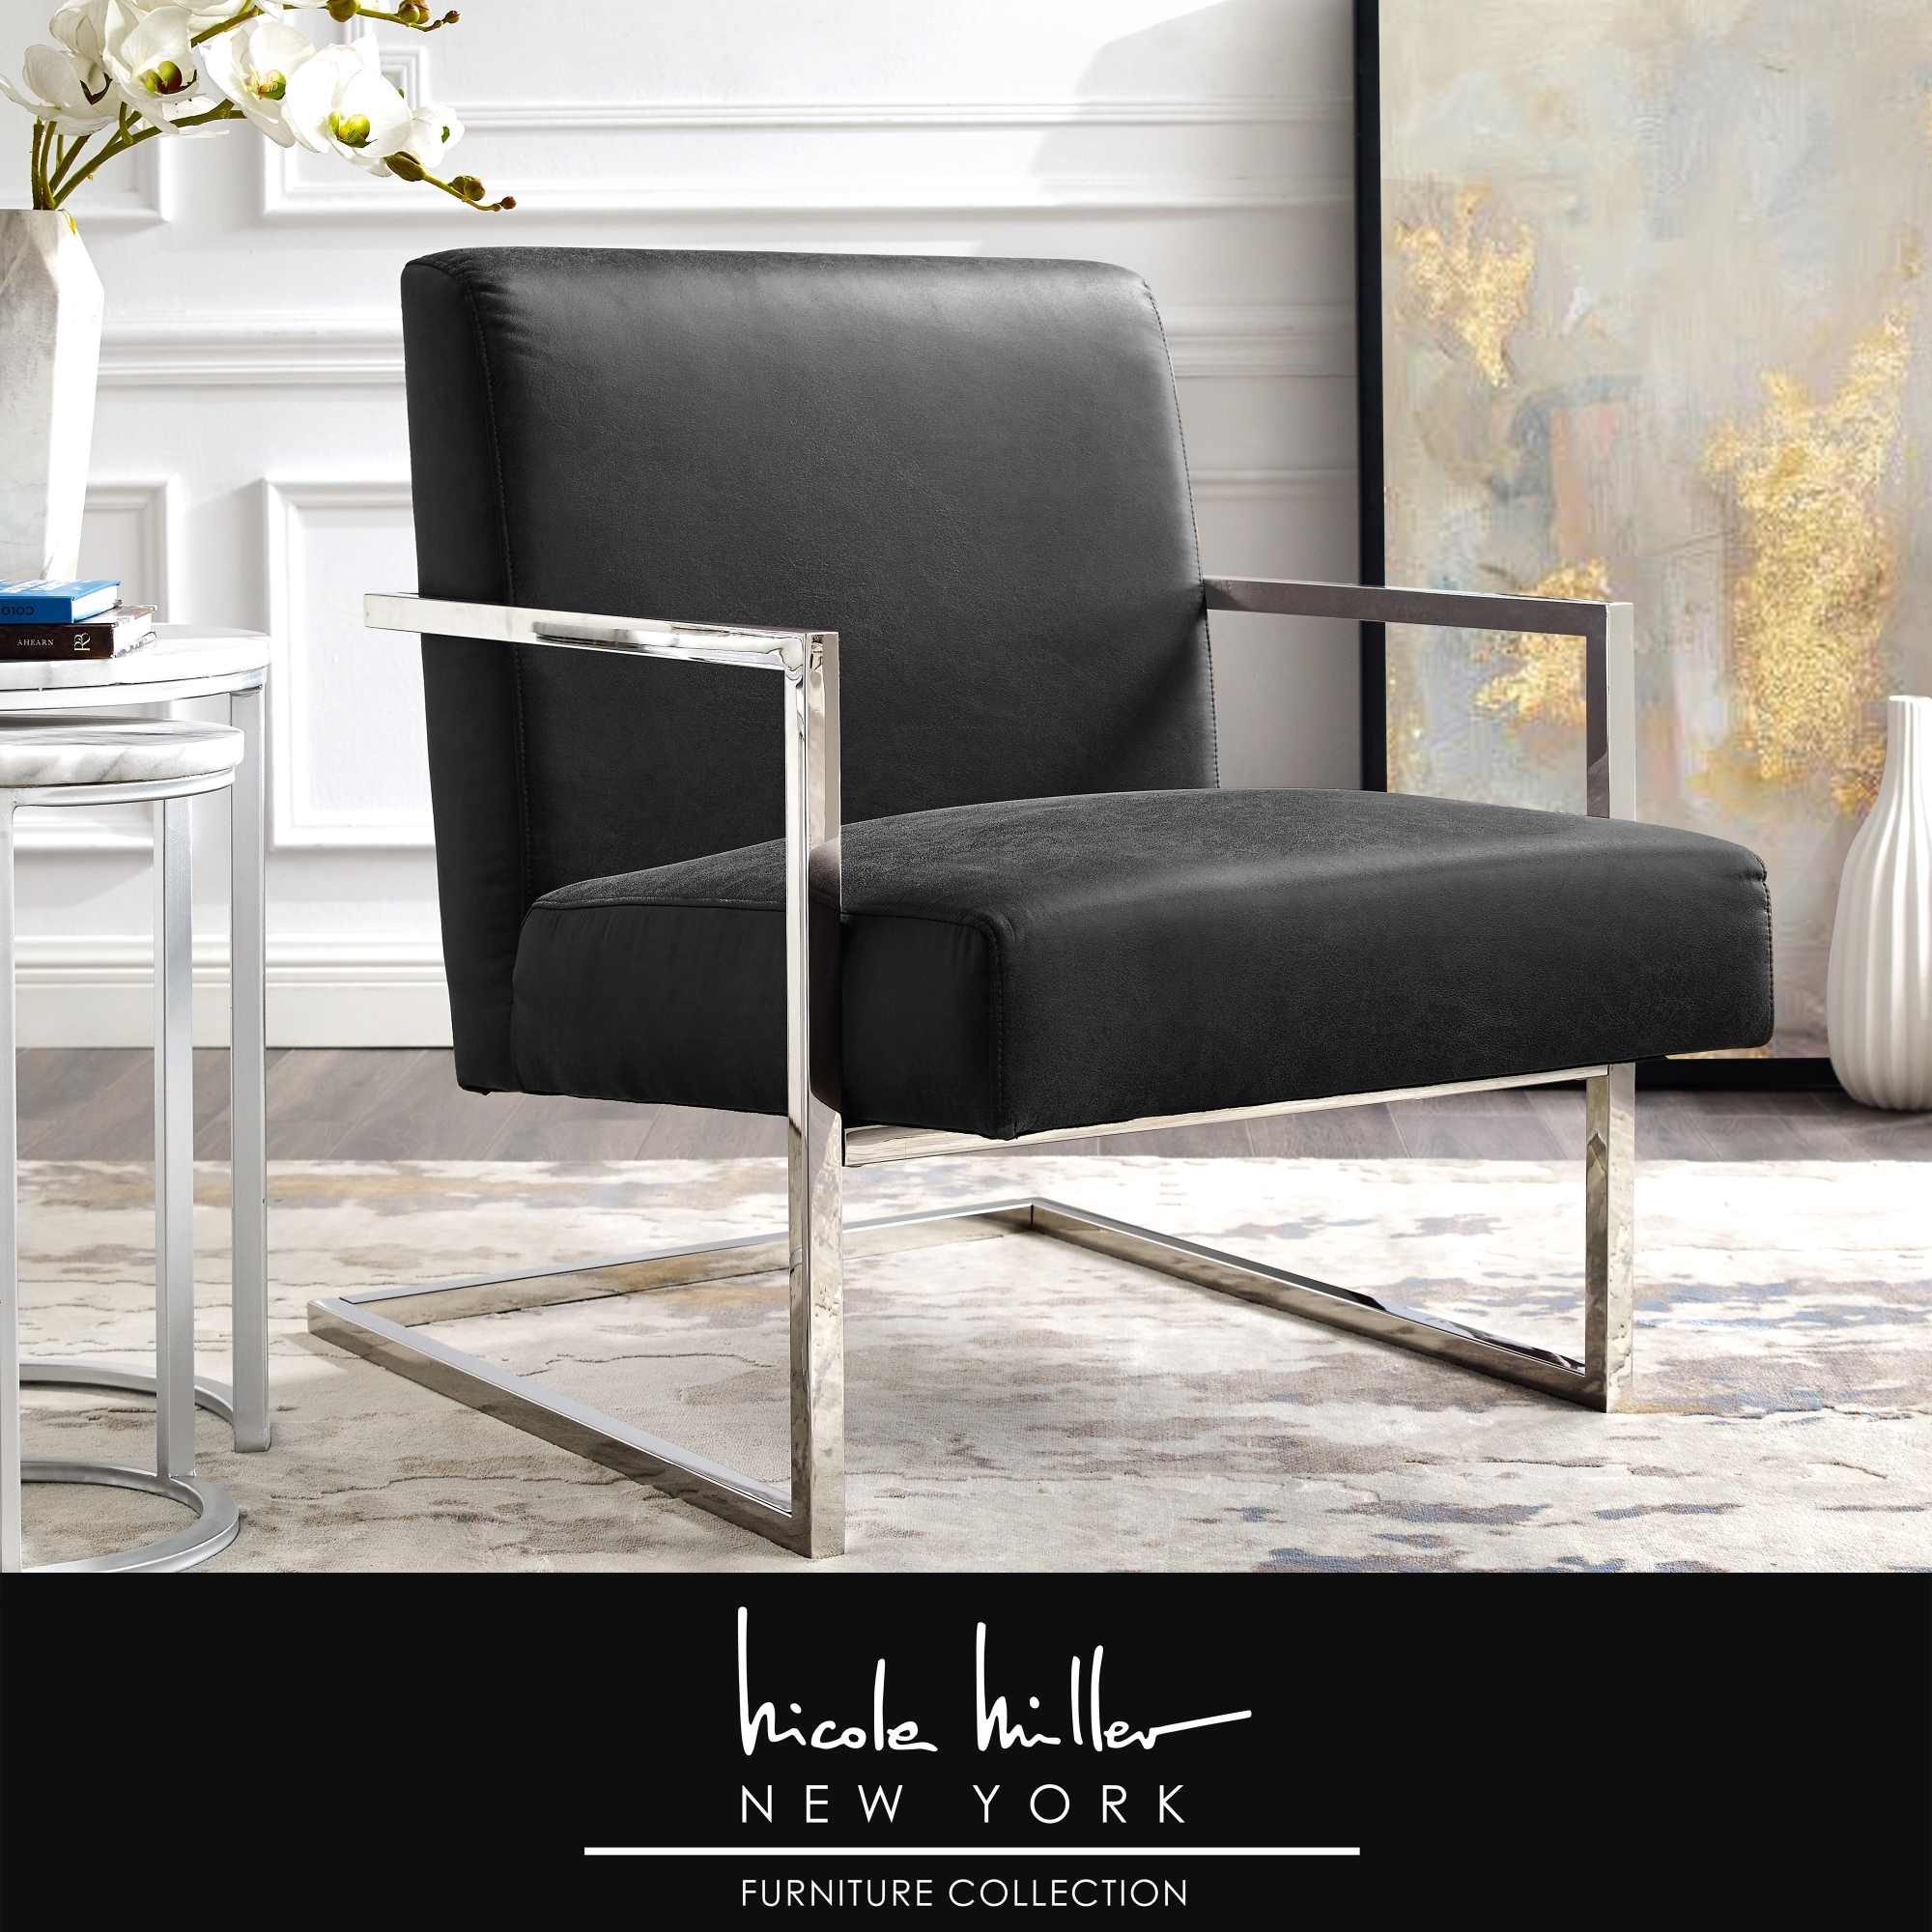 Nicole Miller Charcoal/Chrome PU Leather Accent Chair Square Arm Stainless Steel Frame